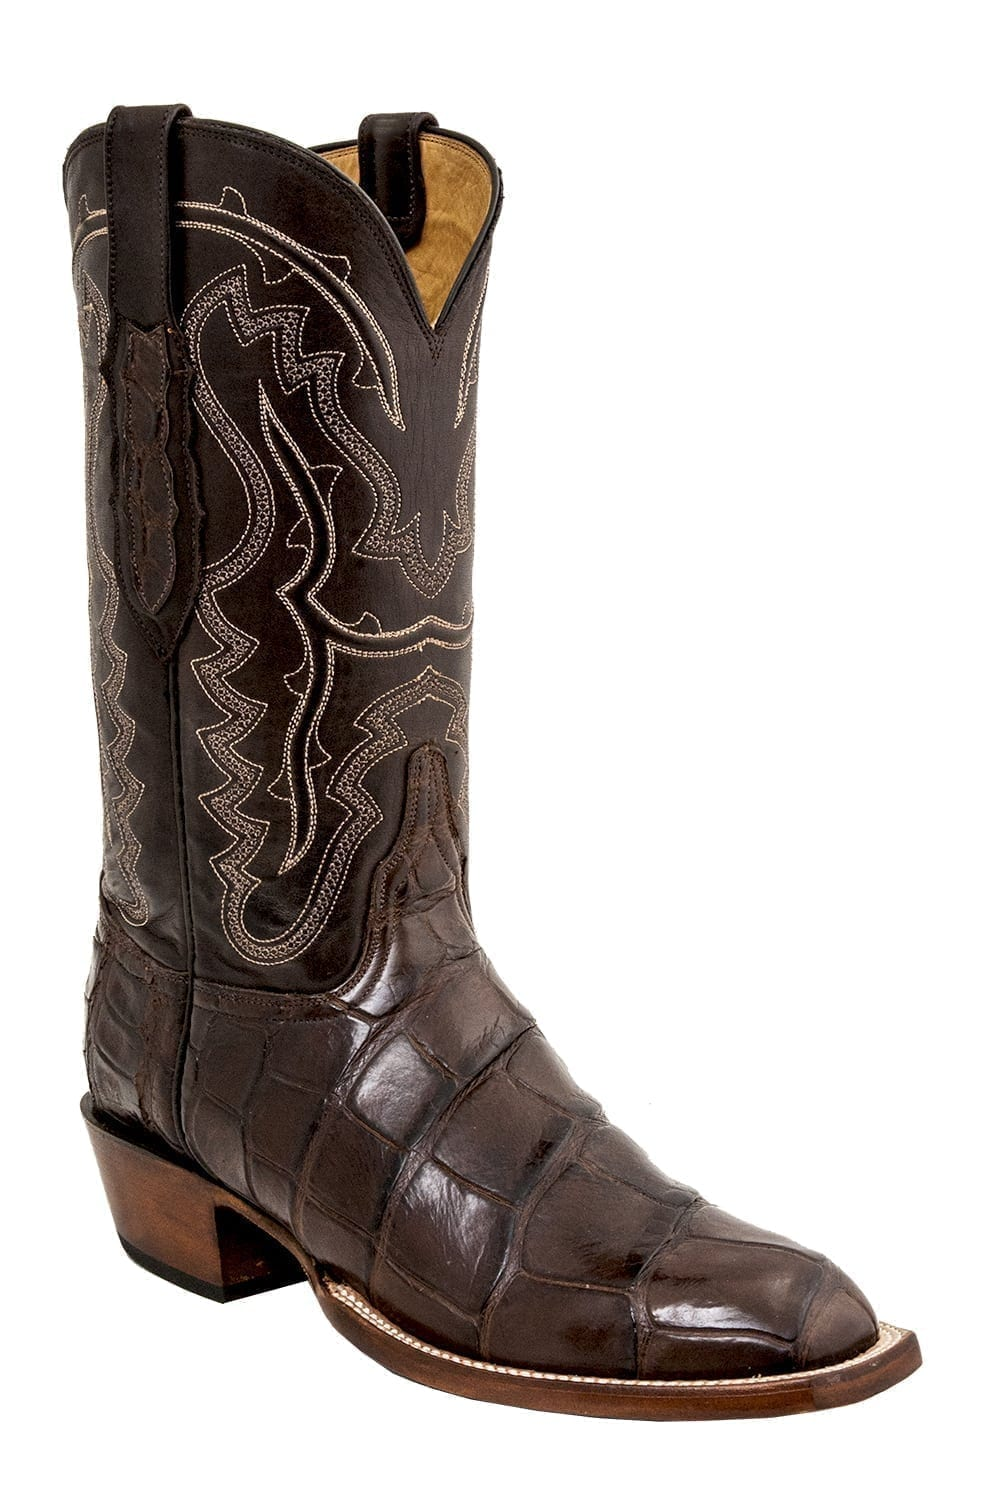 Lucchese Men S Classic Exclusive Giant Alligator Belly